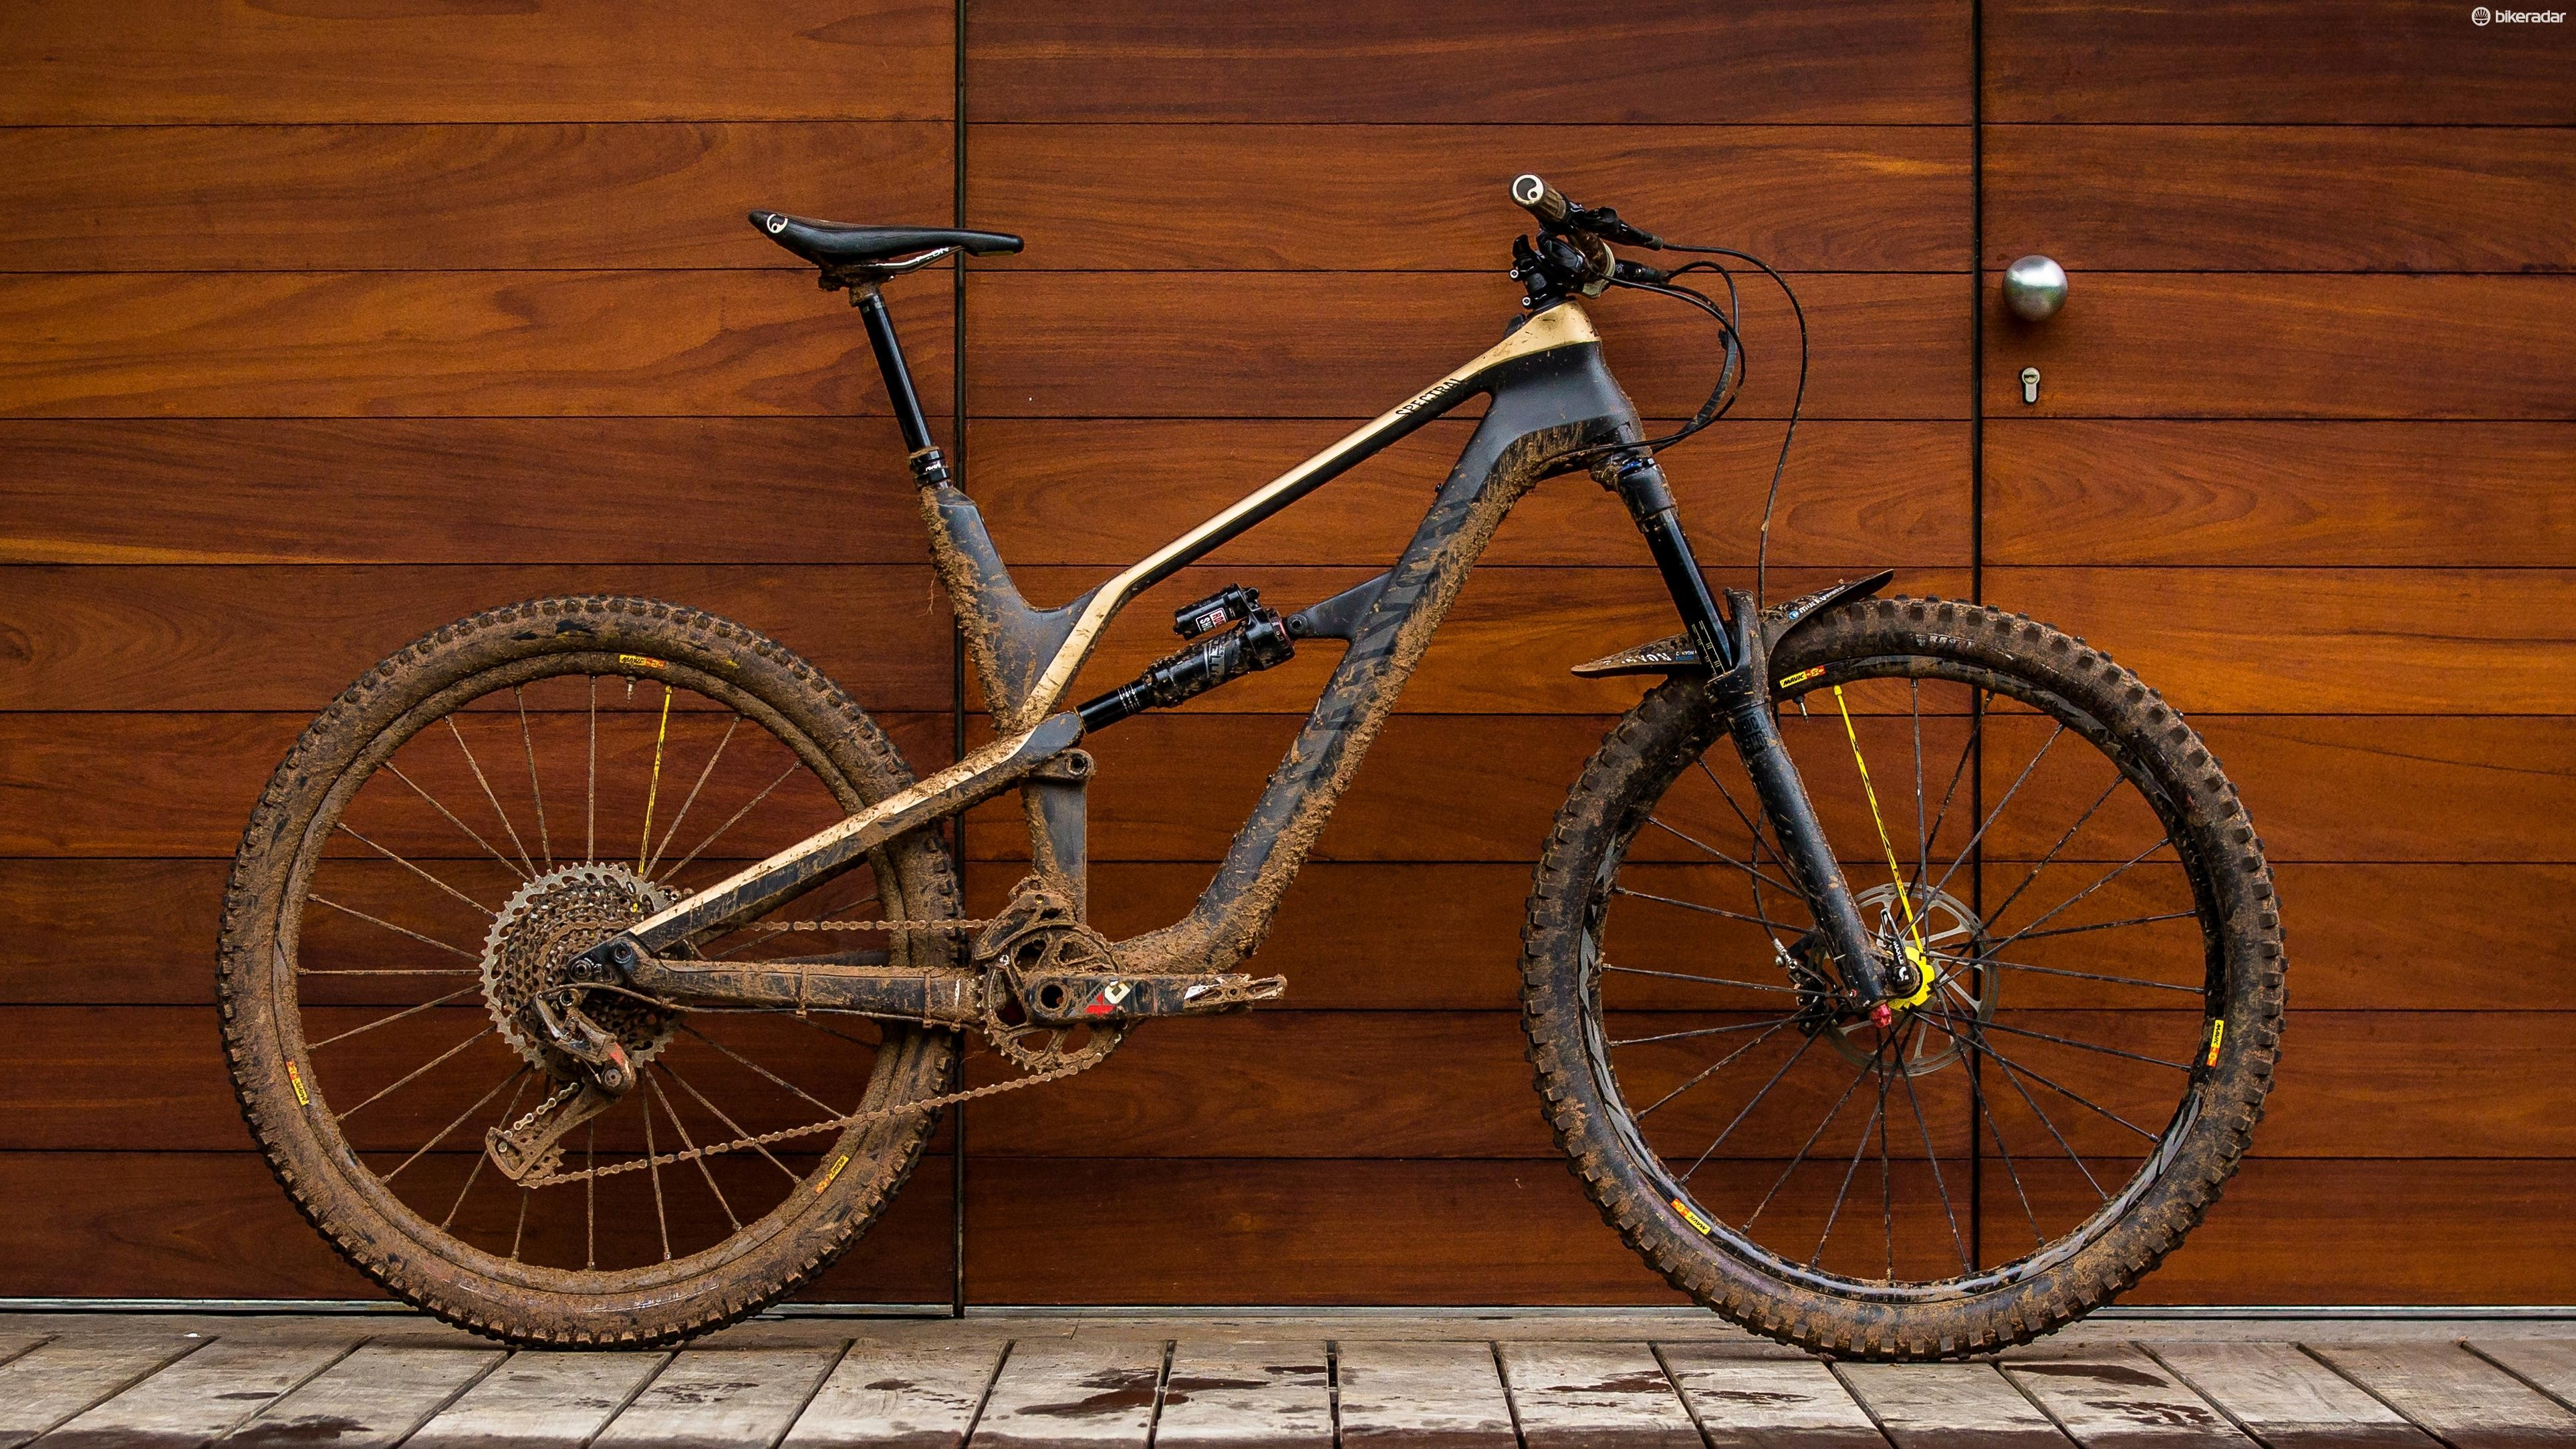 The Canyon Spectral only has 140mm of rear wheel travel, but this is enough for the Scottish EWS racer